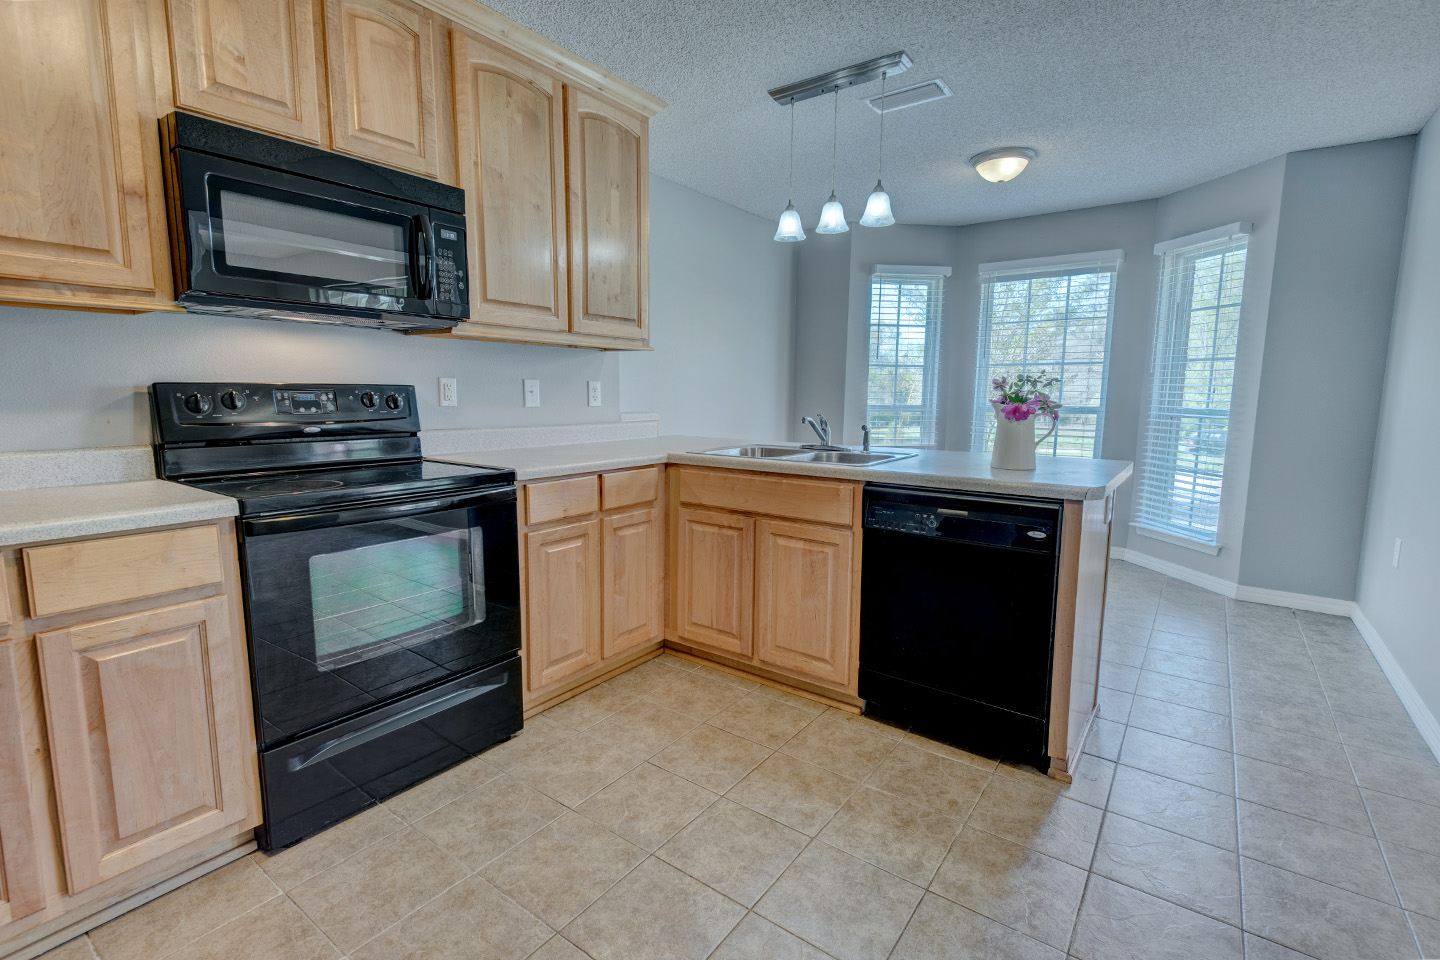 One of the Coziest Homes For Sale in Bay Minette Alabama! | Jason ...